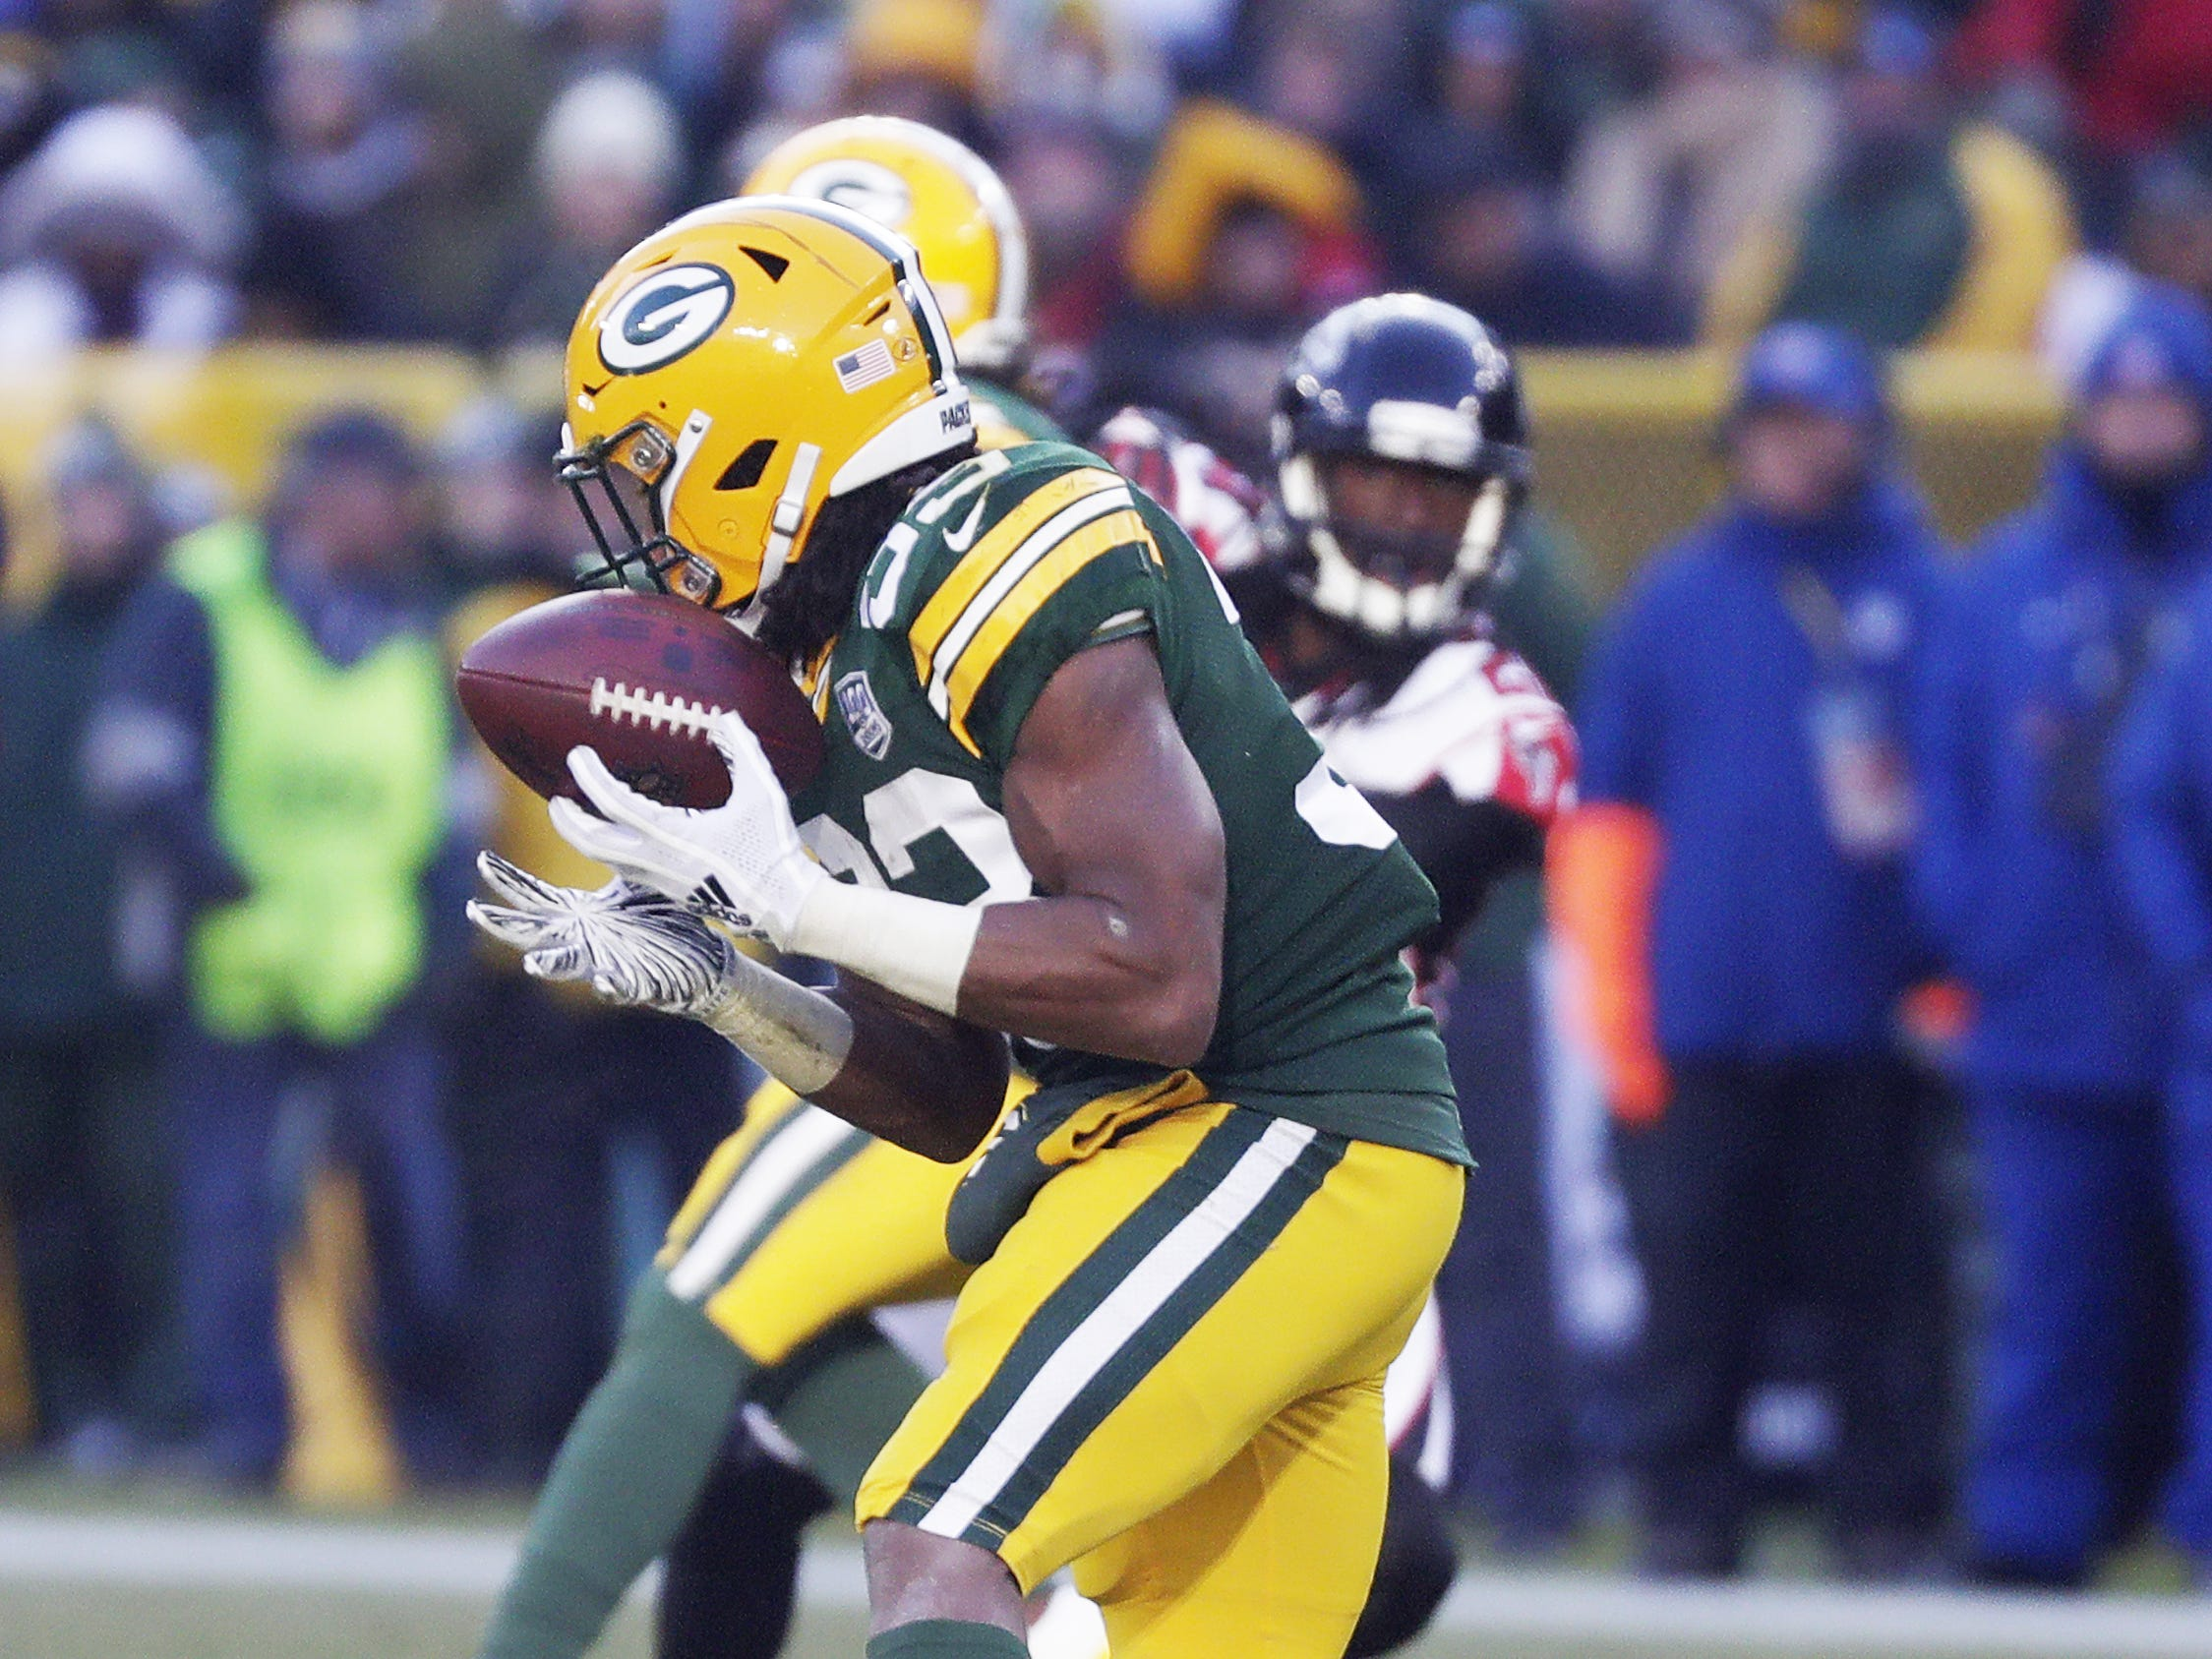 Green Bay Packers running back Aaron Jones (33) makes a catch in the third quarter against the Atlanta Falcons at Lambeau Field on Sunday, December 9, 2018 in Green Bay, Wis. Adam Wesley/USA TODAY NETWORK-Wis